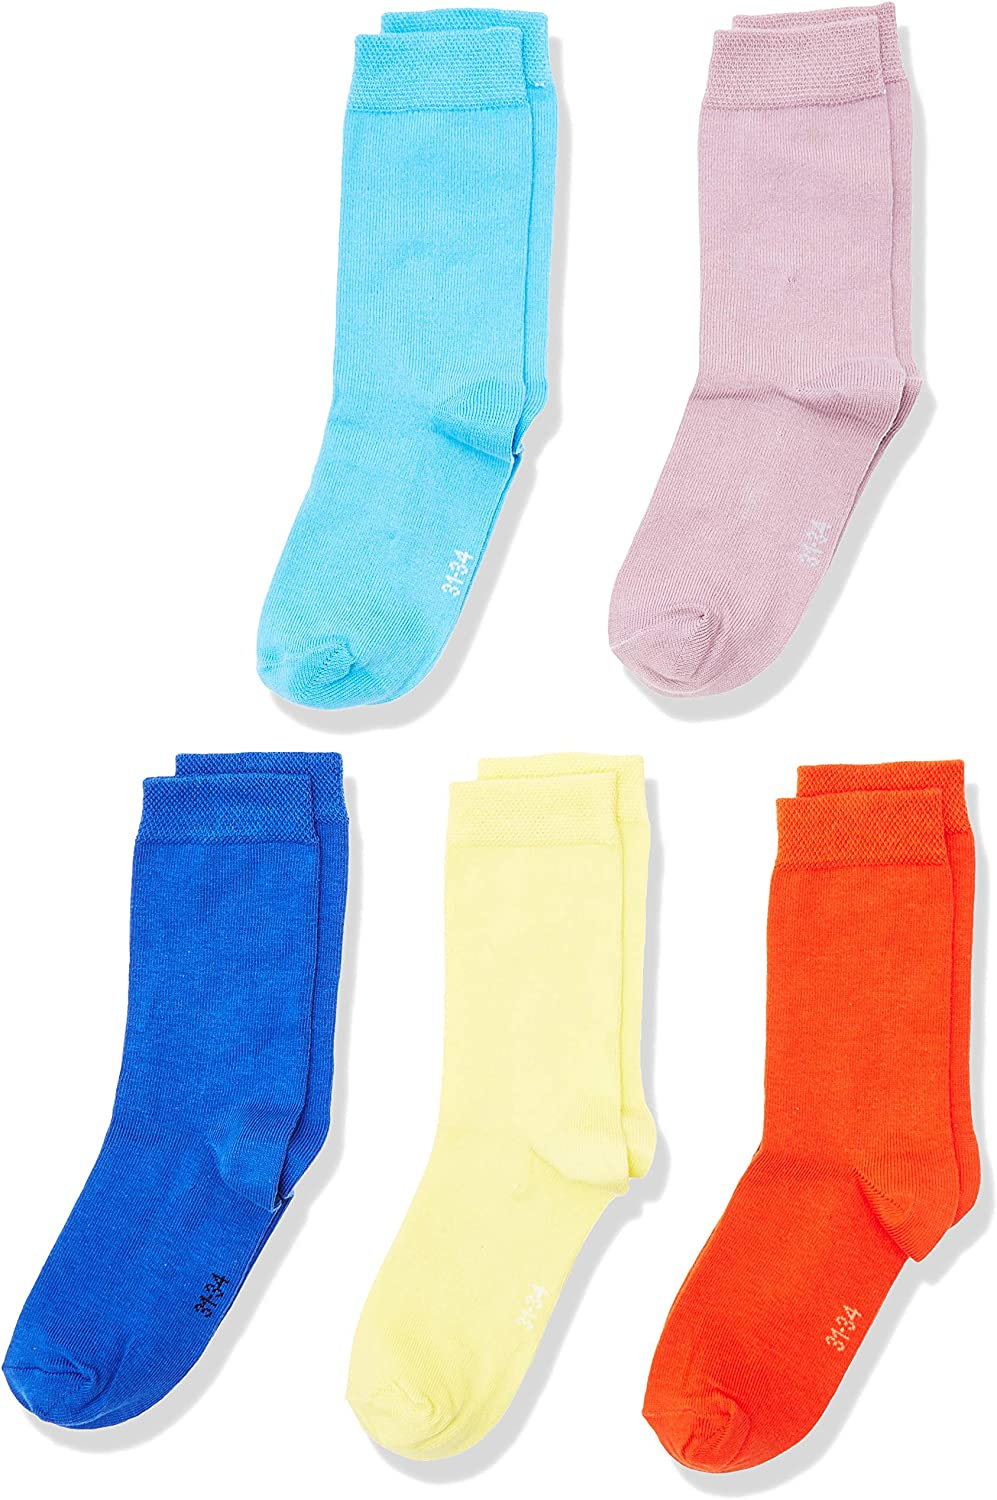 Blanco 35-38 White 660 Talla del fabricante: 35//38 Pack de 10 MyWay Kids Socks Basic 10er Calcetines